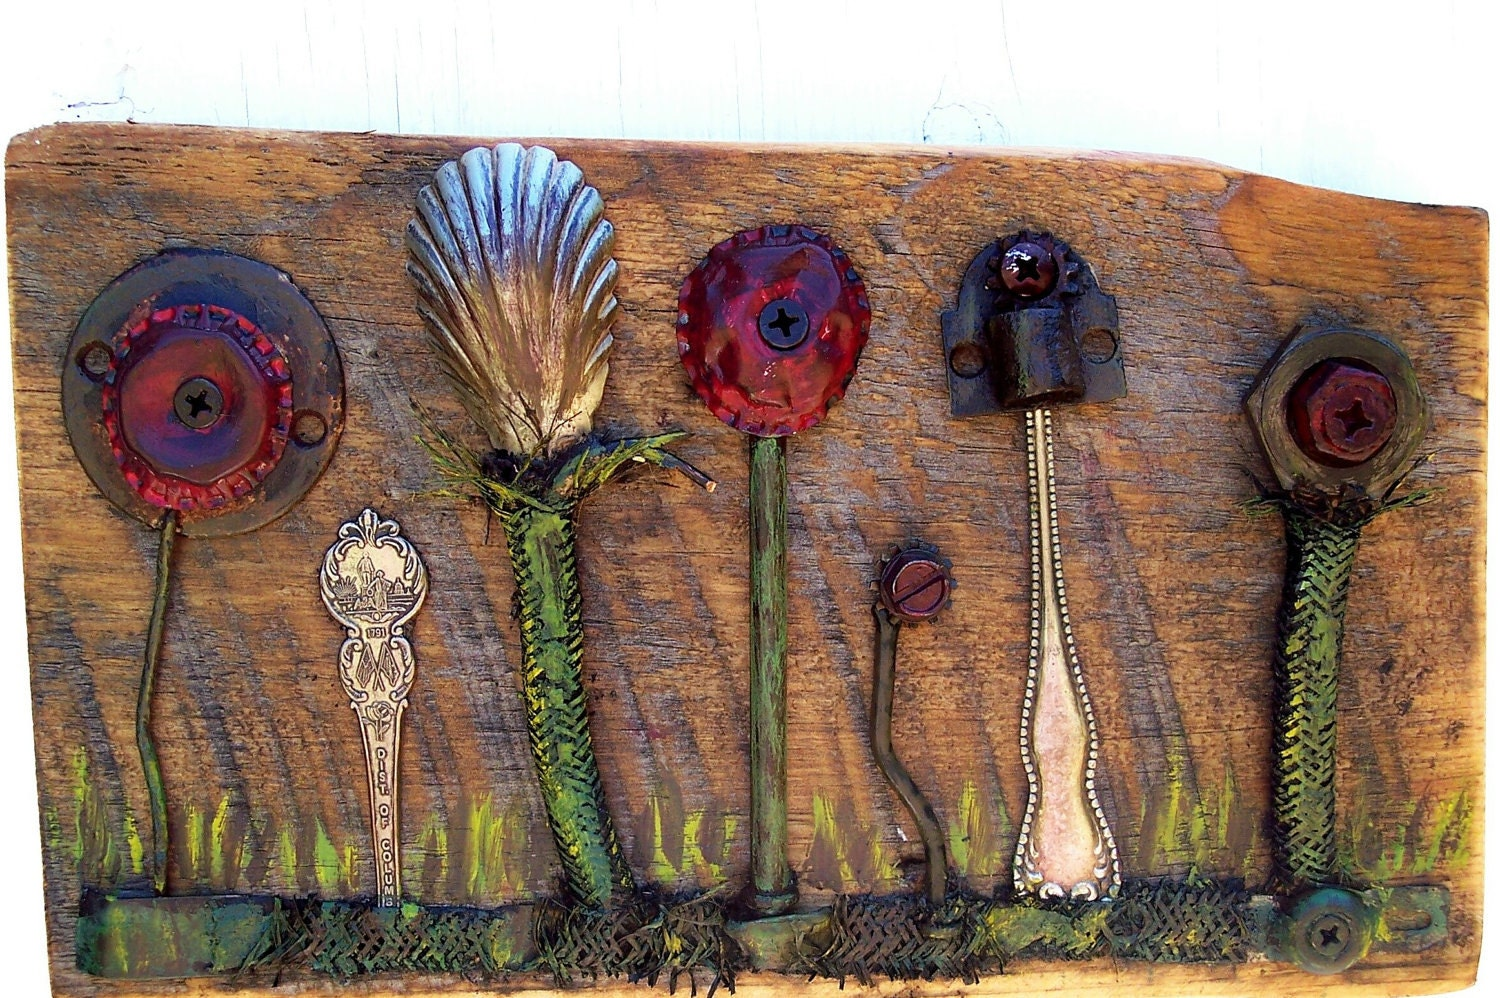 Reclaimed art assemblage found objects Salvage art flowers